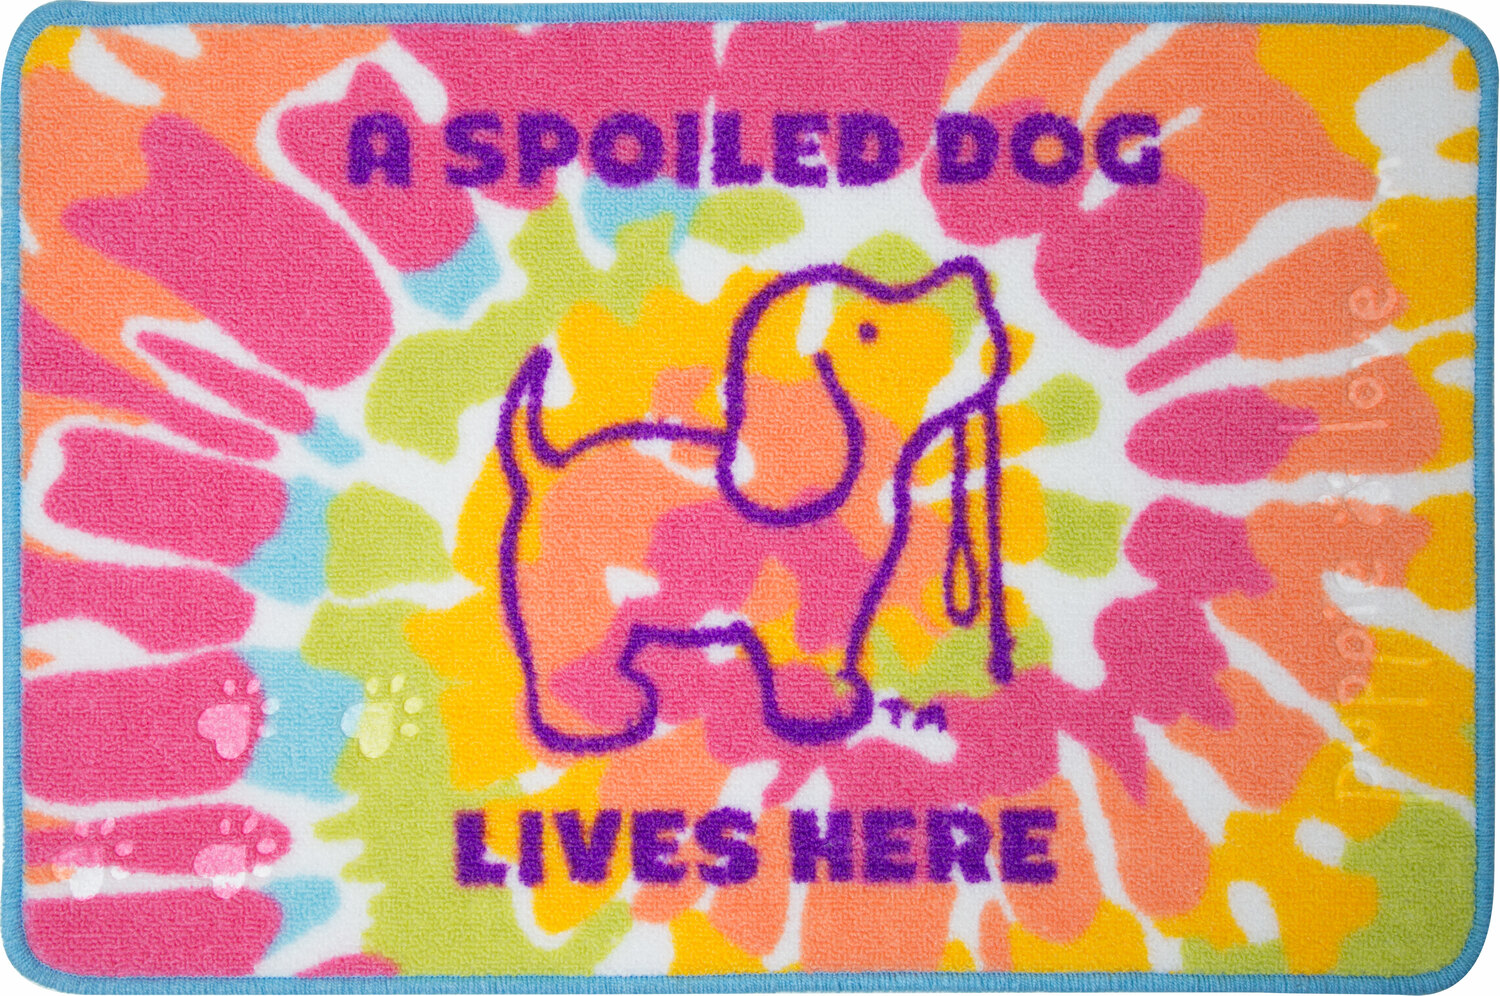 "Spoiled by Puppie Love - Spoiled - 27.5"" x 17.75""   Floor Mat"